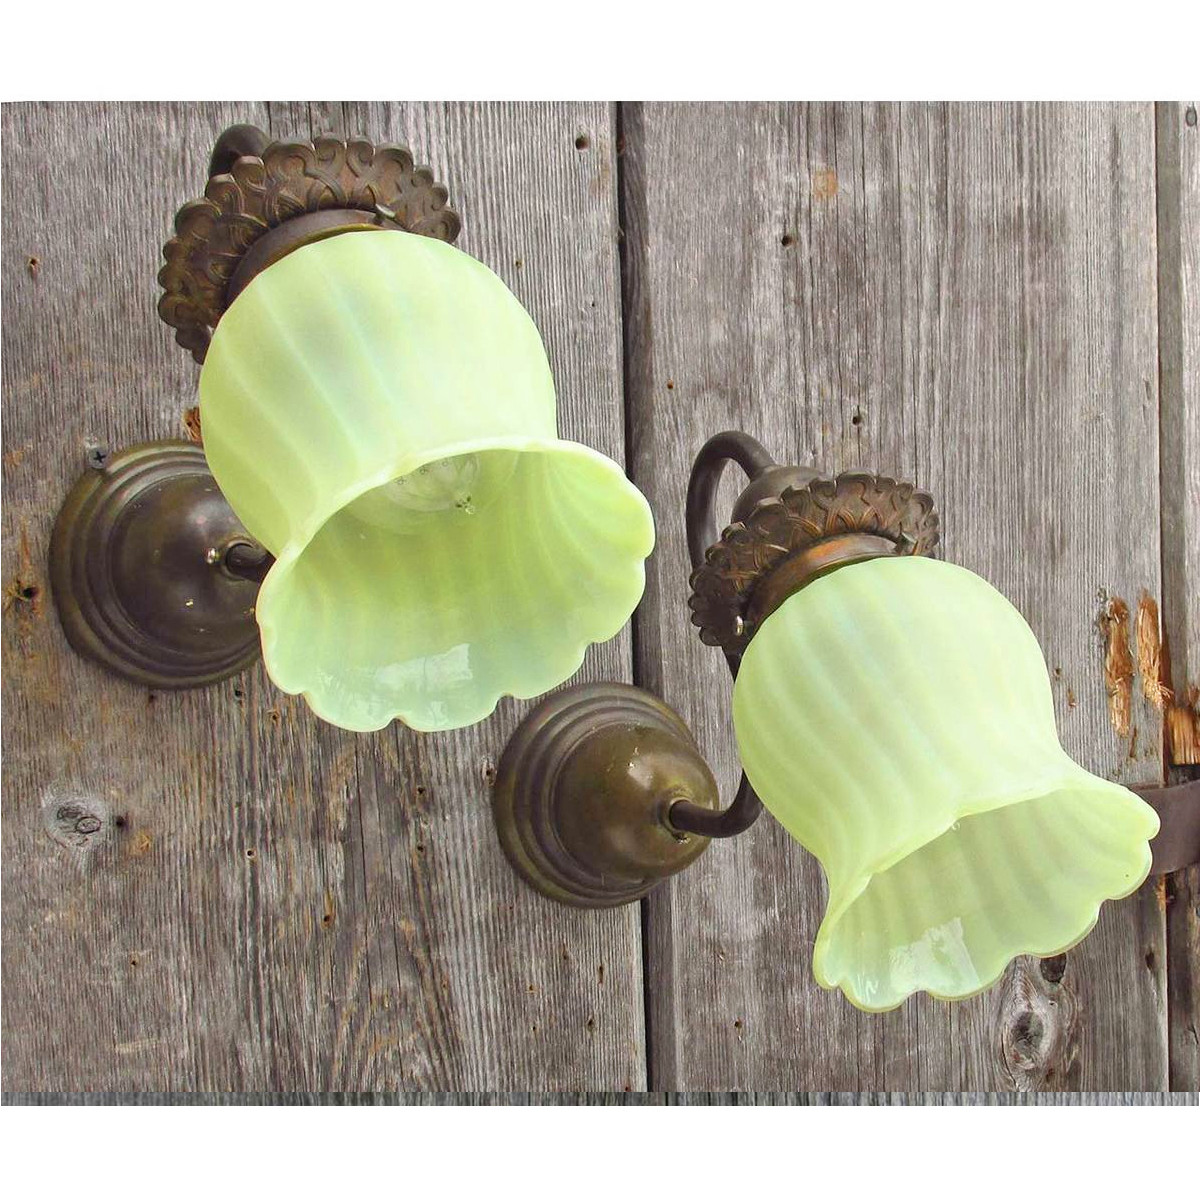 608614 - Pair of Antique Arts and Crafts Wall Sconces with Art Glass Shades  sc 1 st  Materials Unlimited & 608614 - Pair of Antique Arts and Crafts Wall Sconces with Art Glass ...